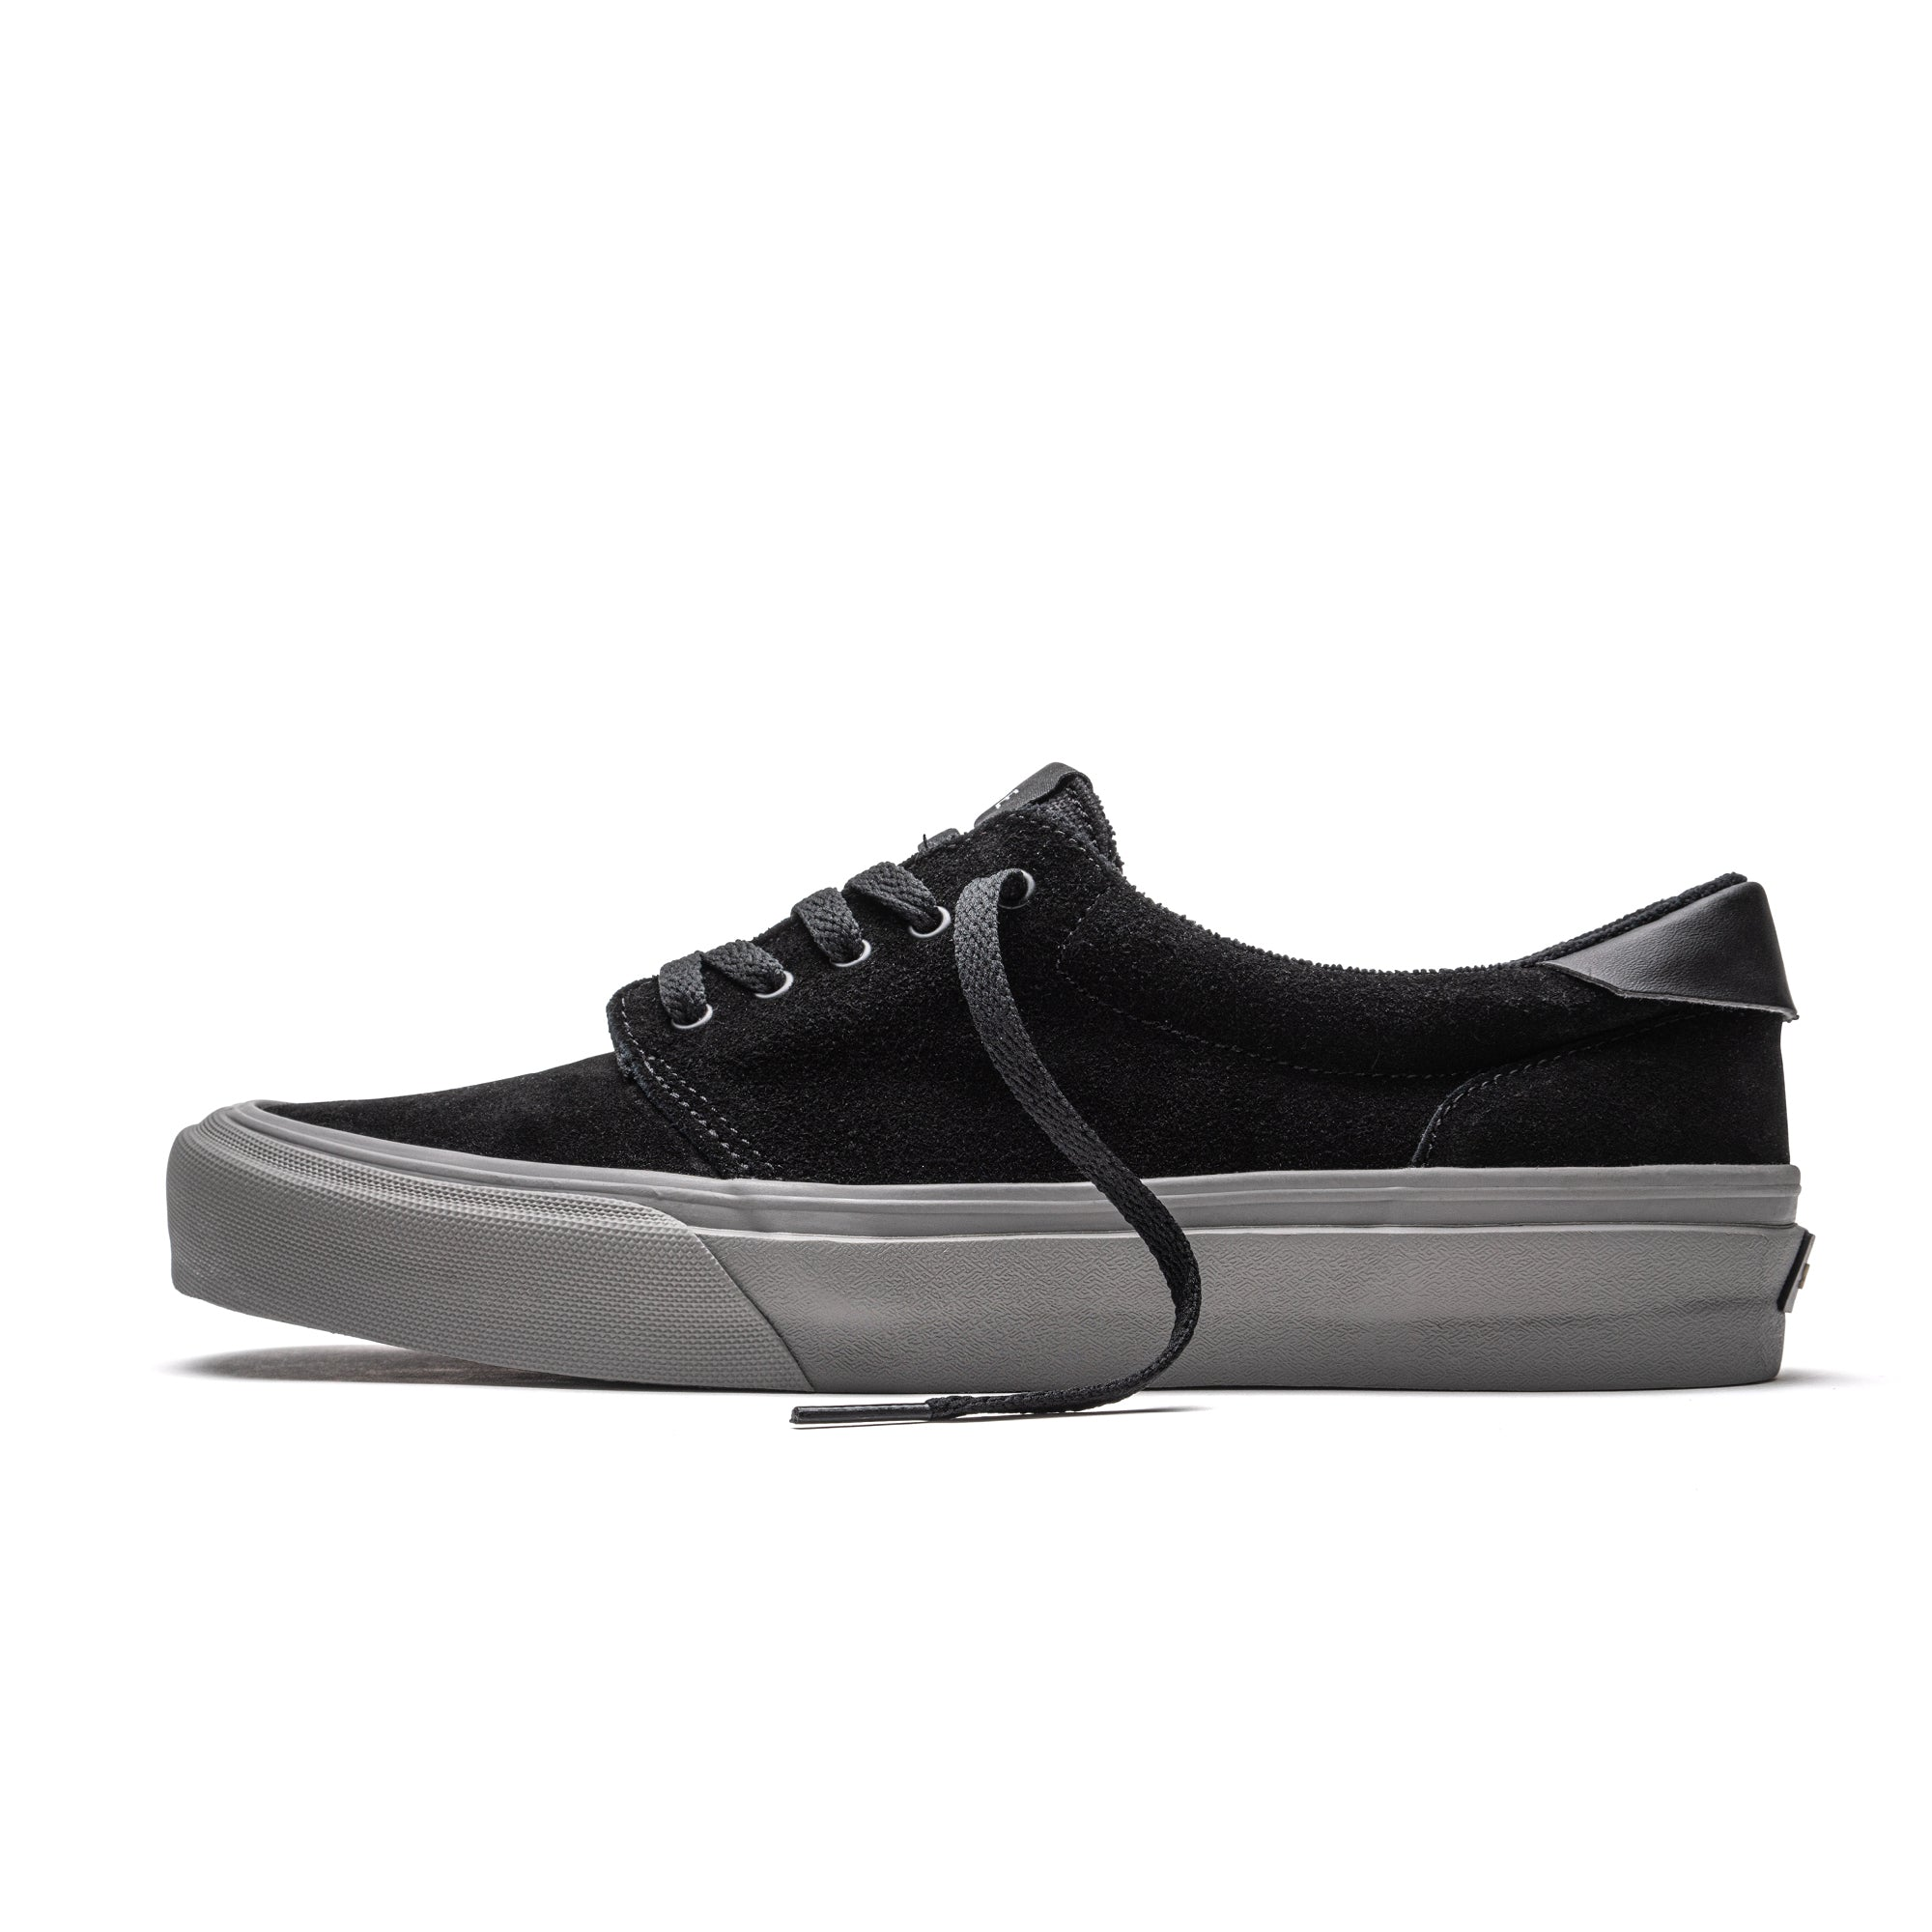 FAIRFAX - BLACK CHARCOAL SUEDE